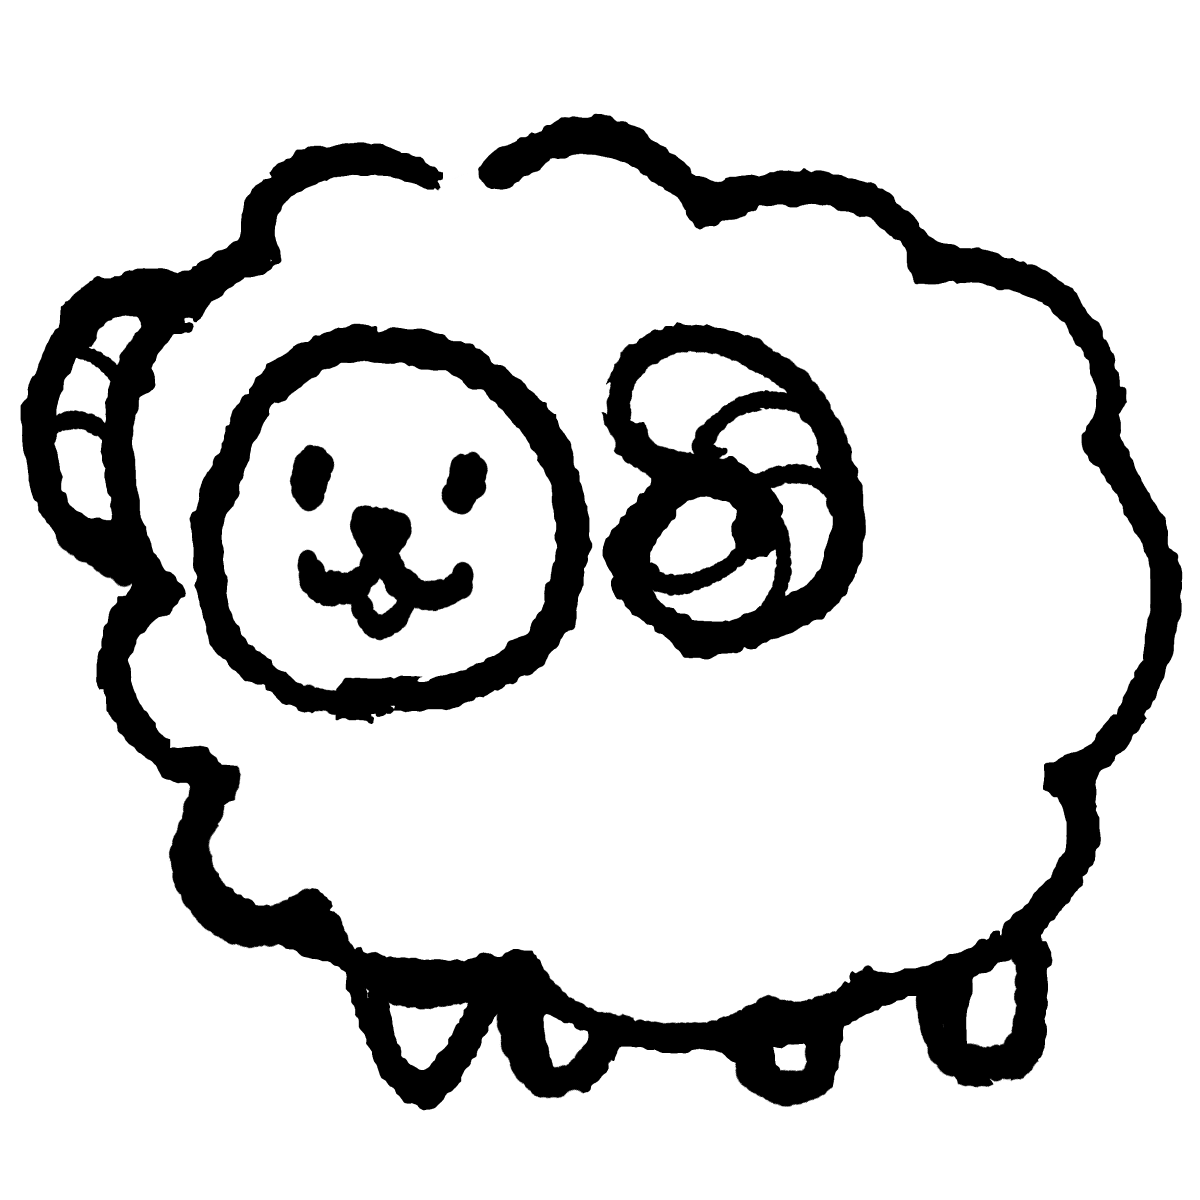 立つ羊のイラスト / Standing sheep Illustration